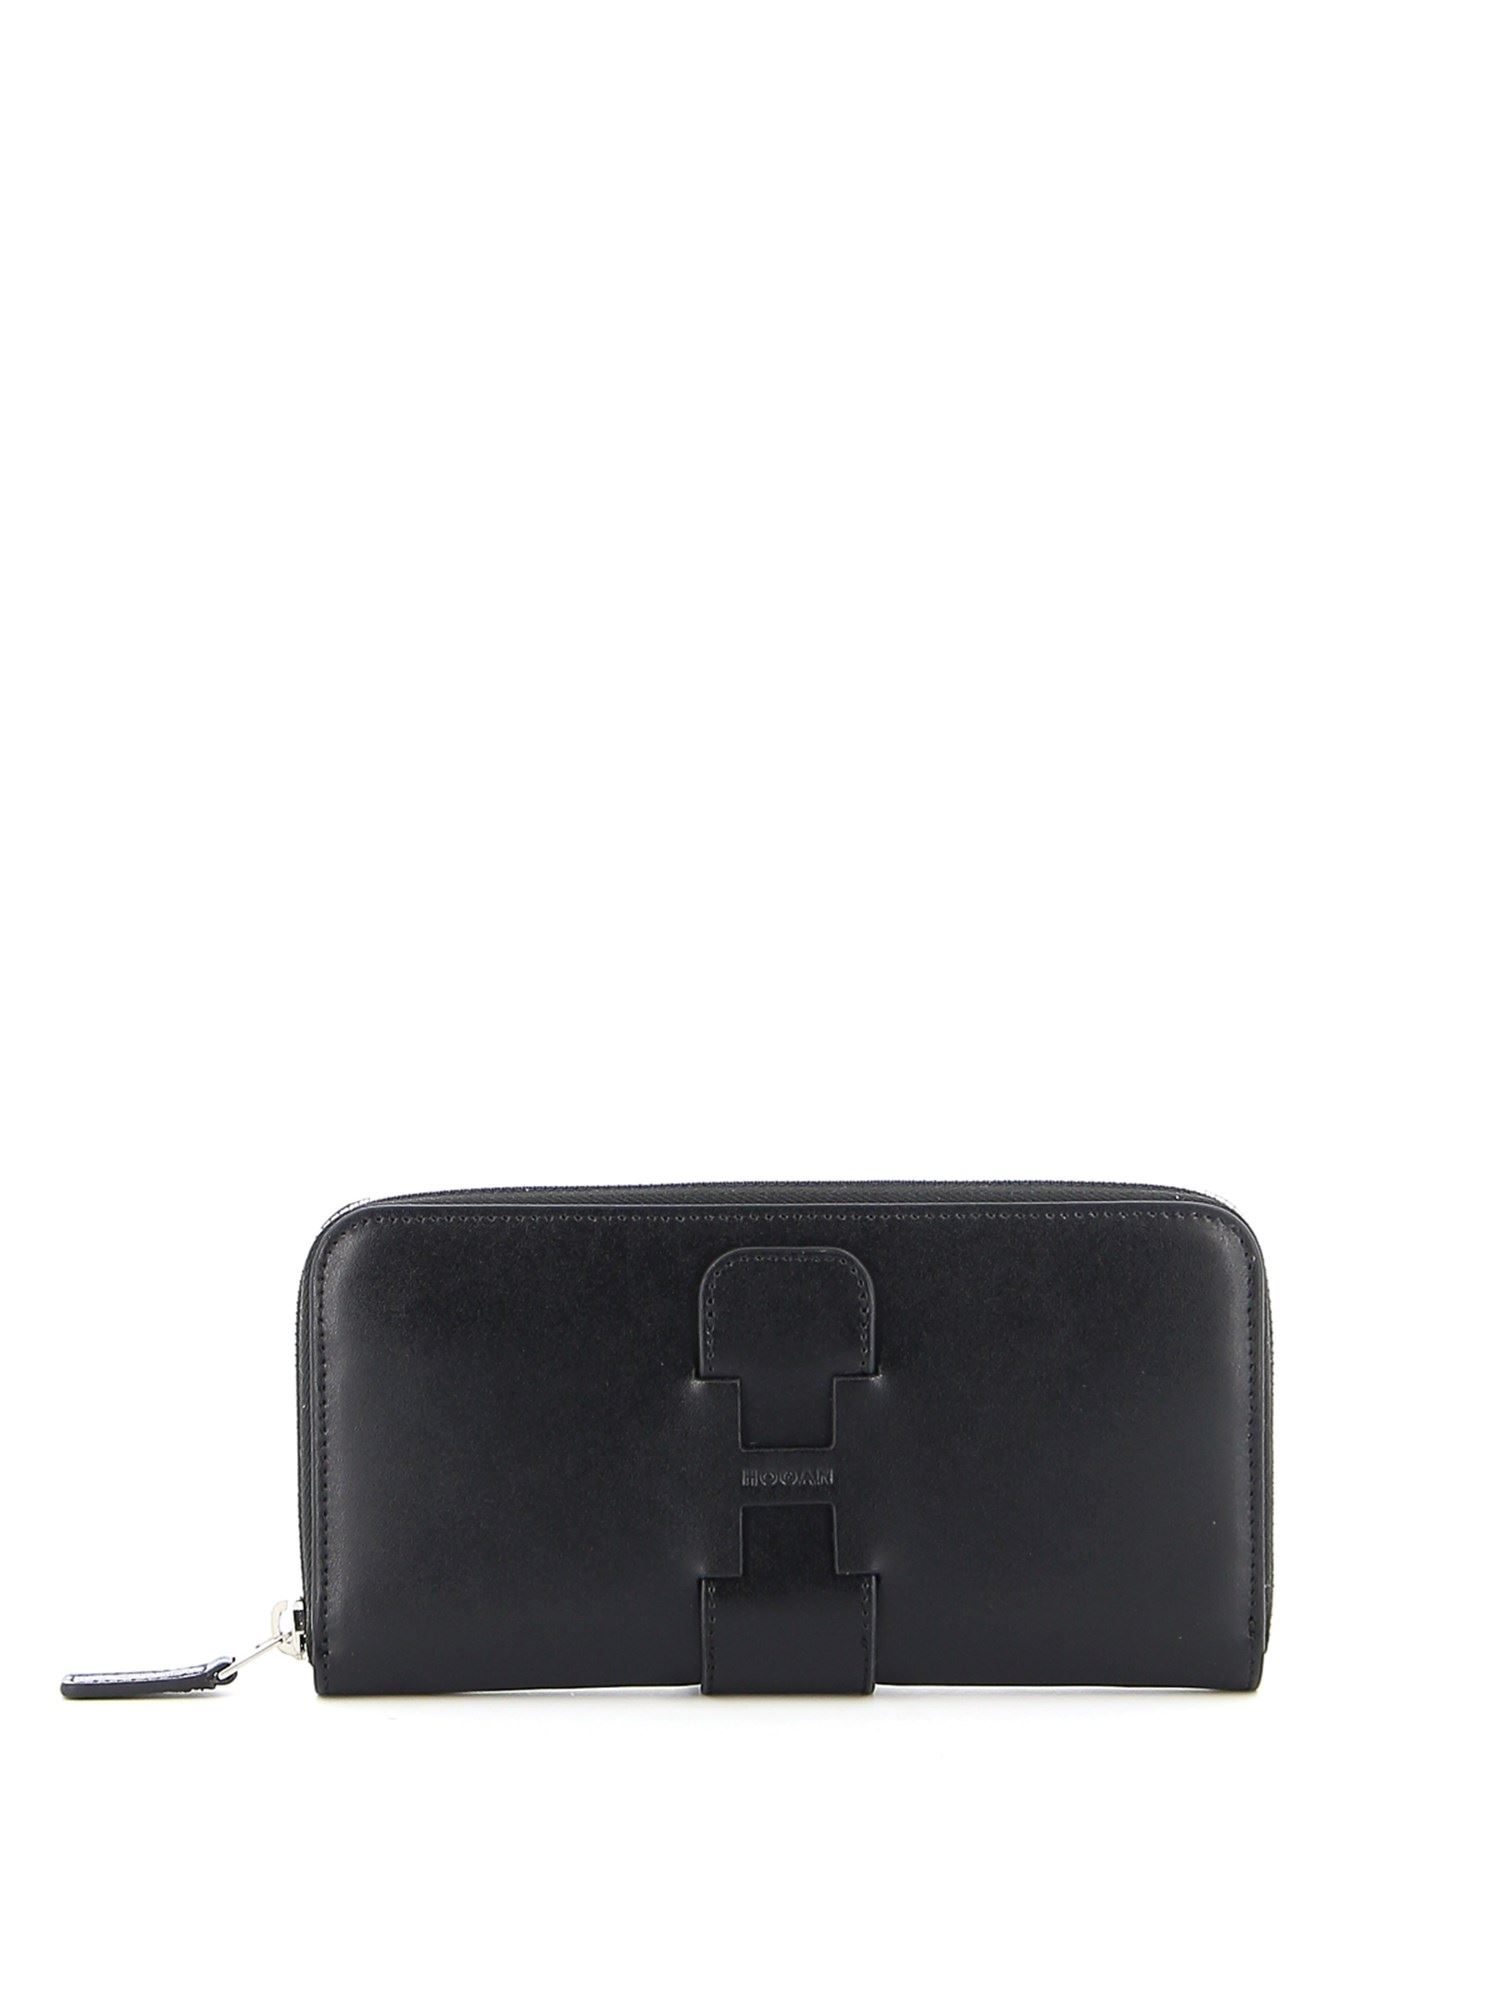 Hogan LEATHER CONTINENTAL WALLET IN BLACK